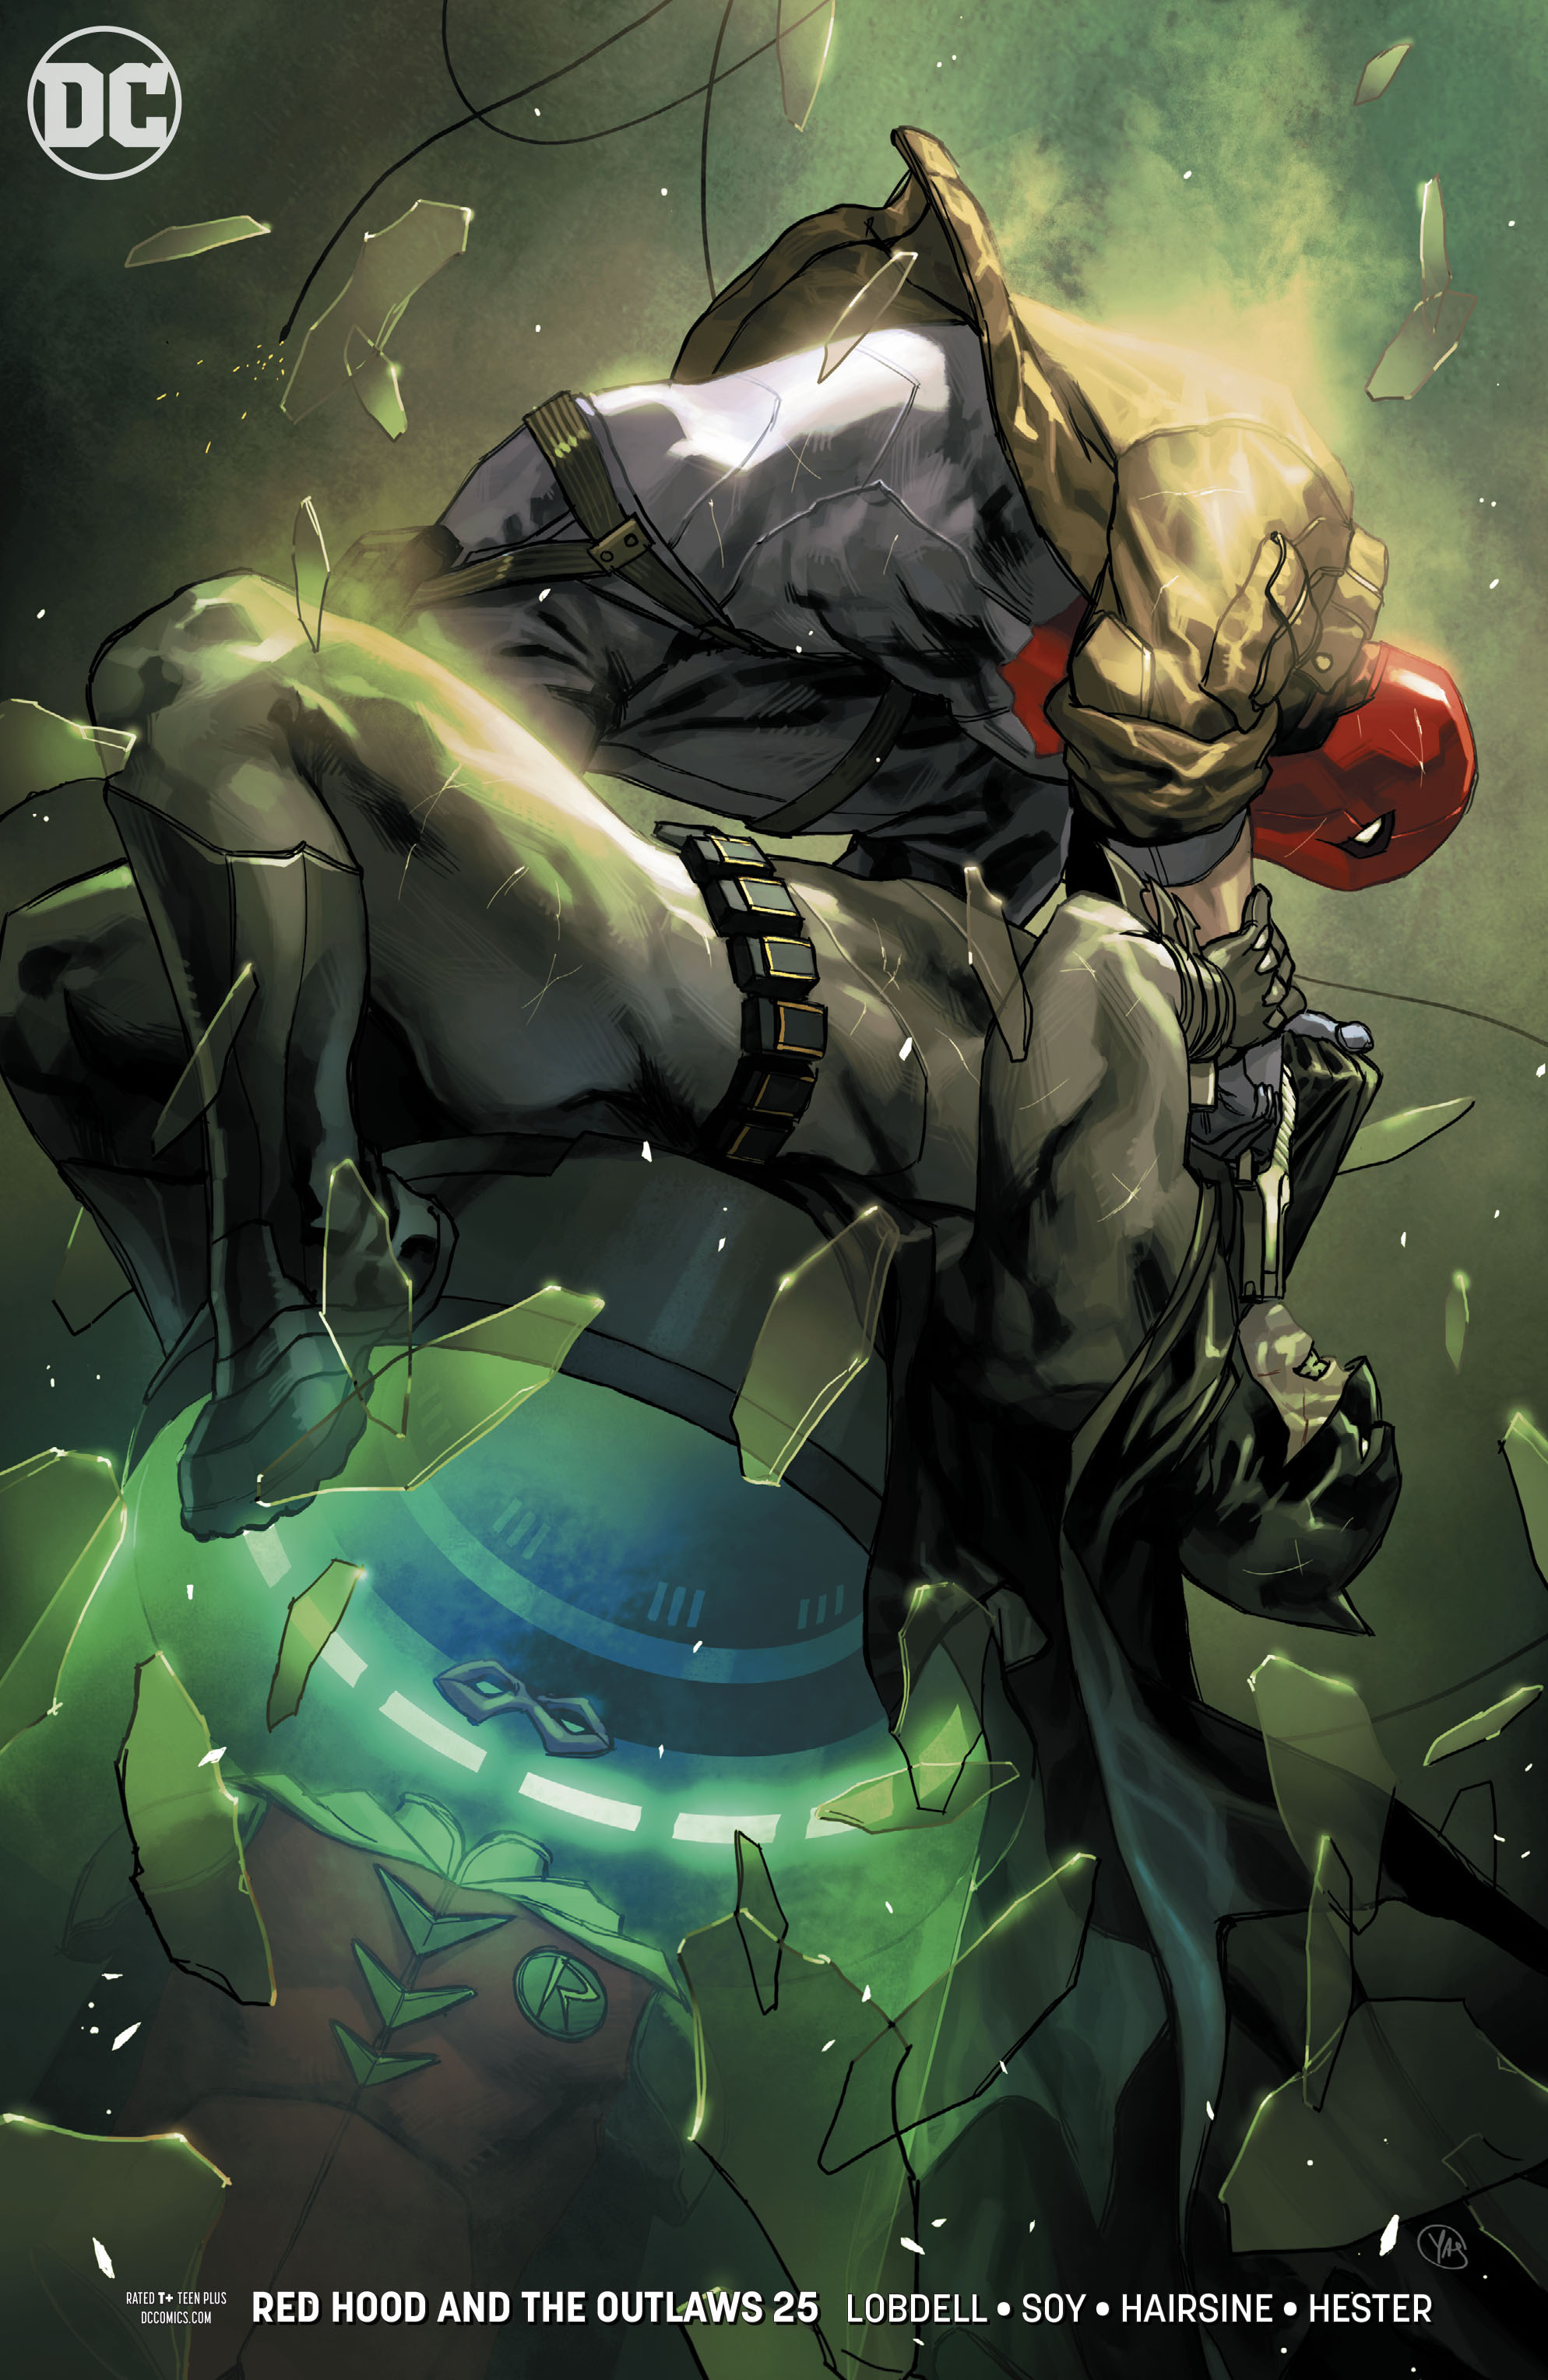 RED HOOD AND THE OUTLAWS #25 VAR ED